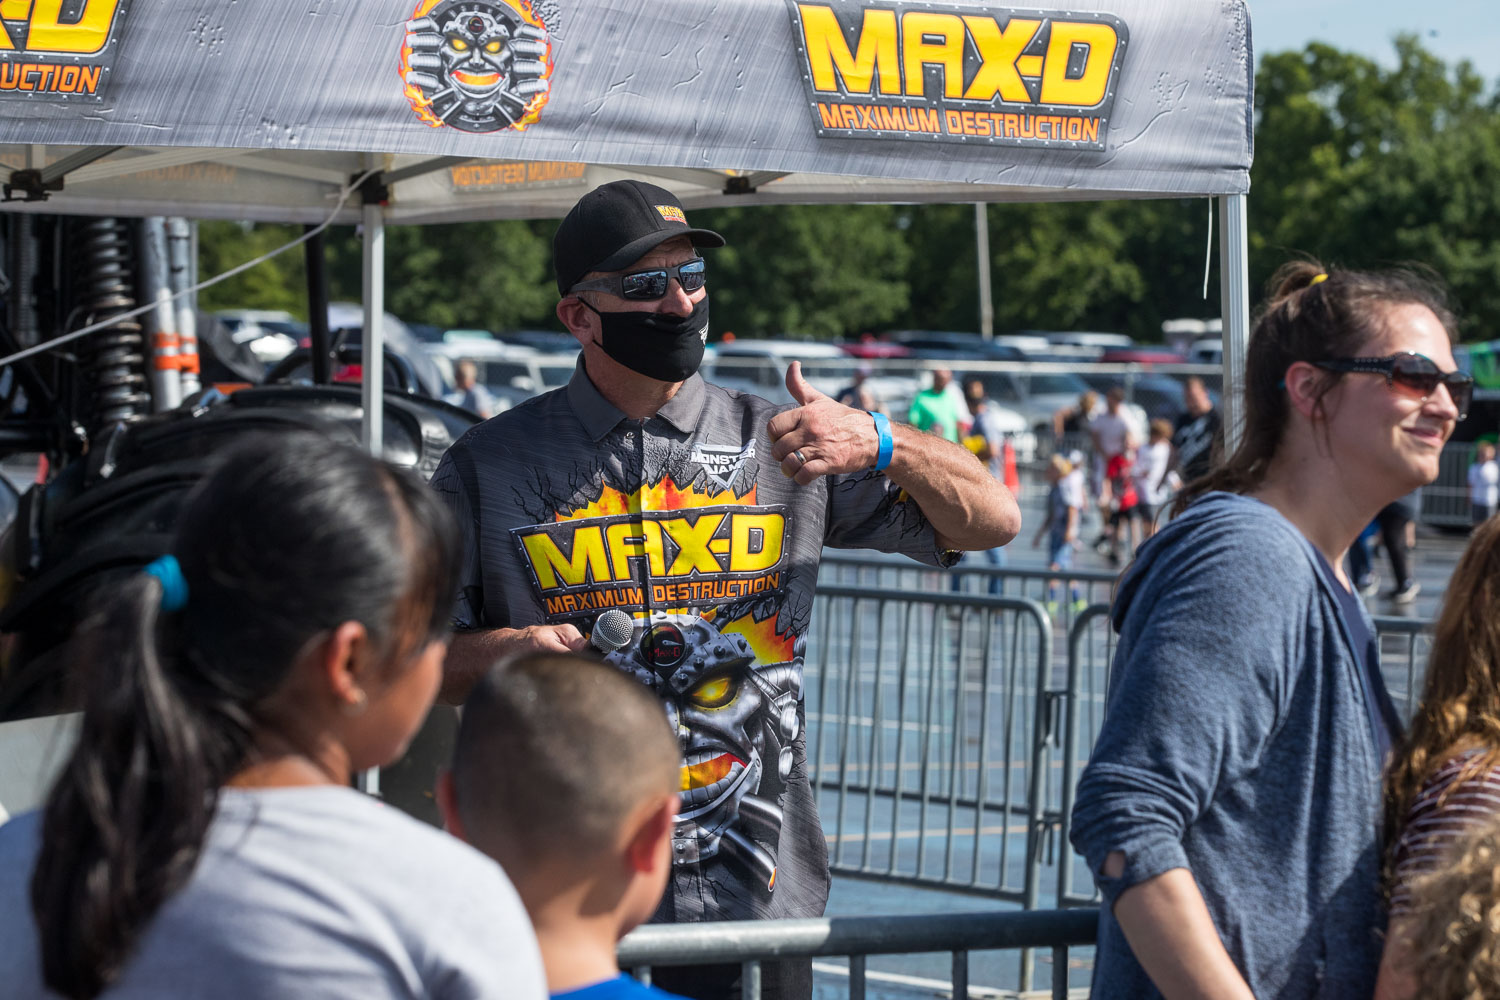 Tom Meents, driver of the Maximum Destruction (Max-D) truck, poses for a photo with fans during the Monster Jam Pit Party prior to the main event at GEHA Field at Arrowhead on Saturday evening, June 26, 2021.